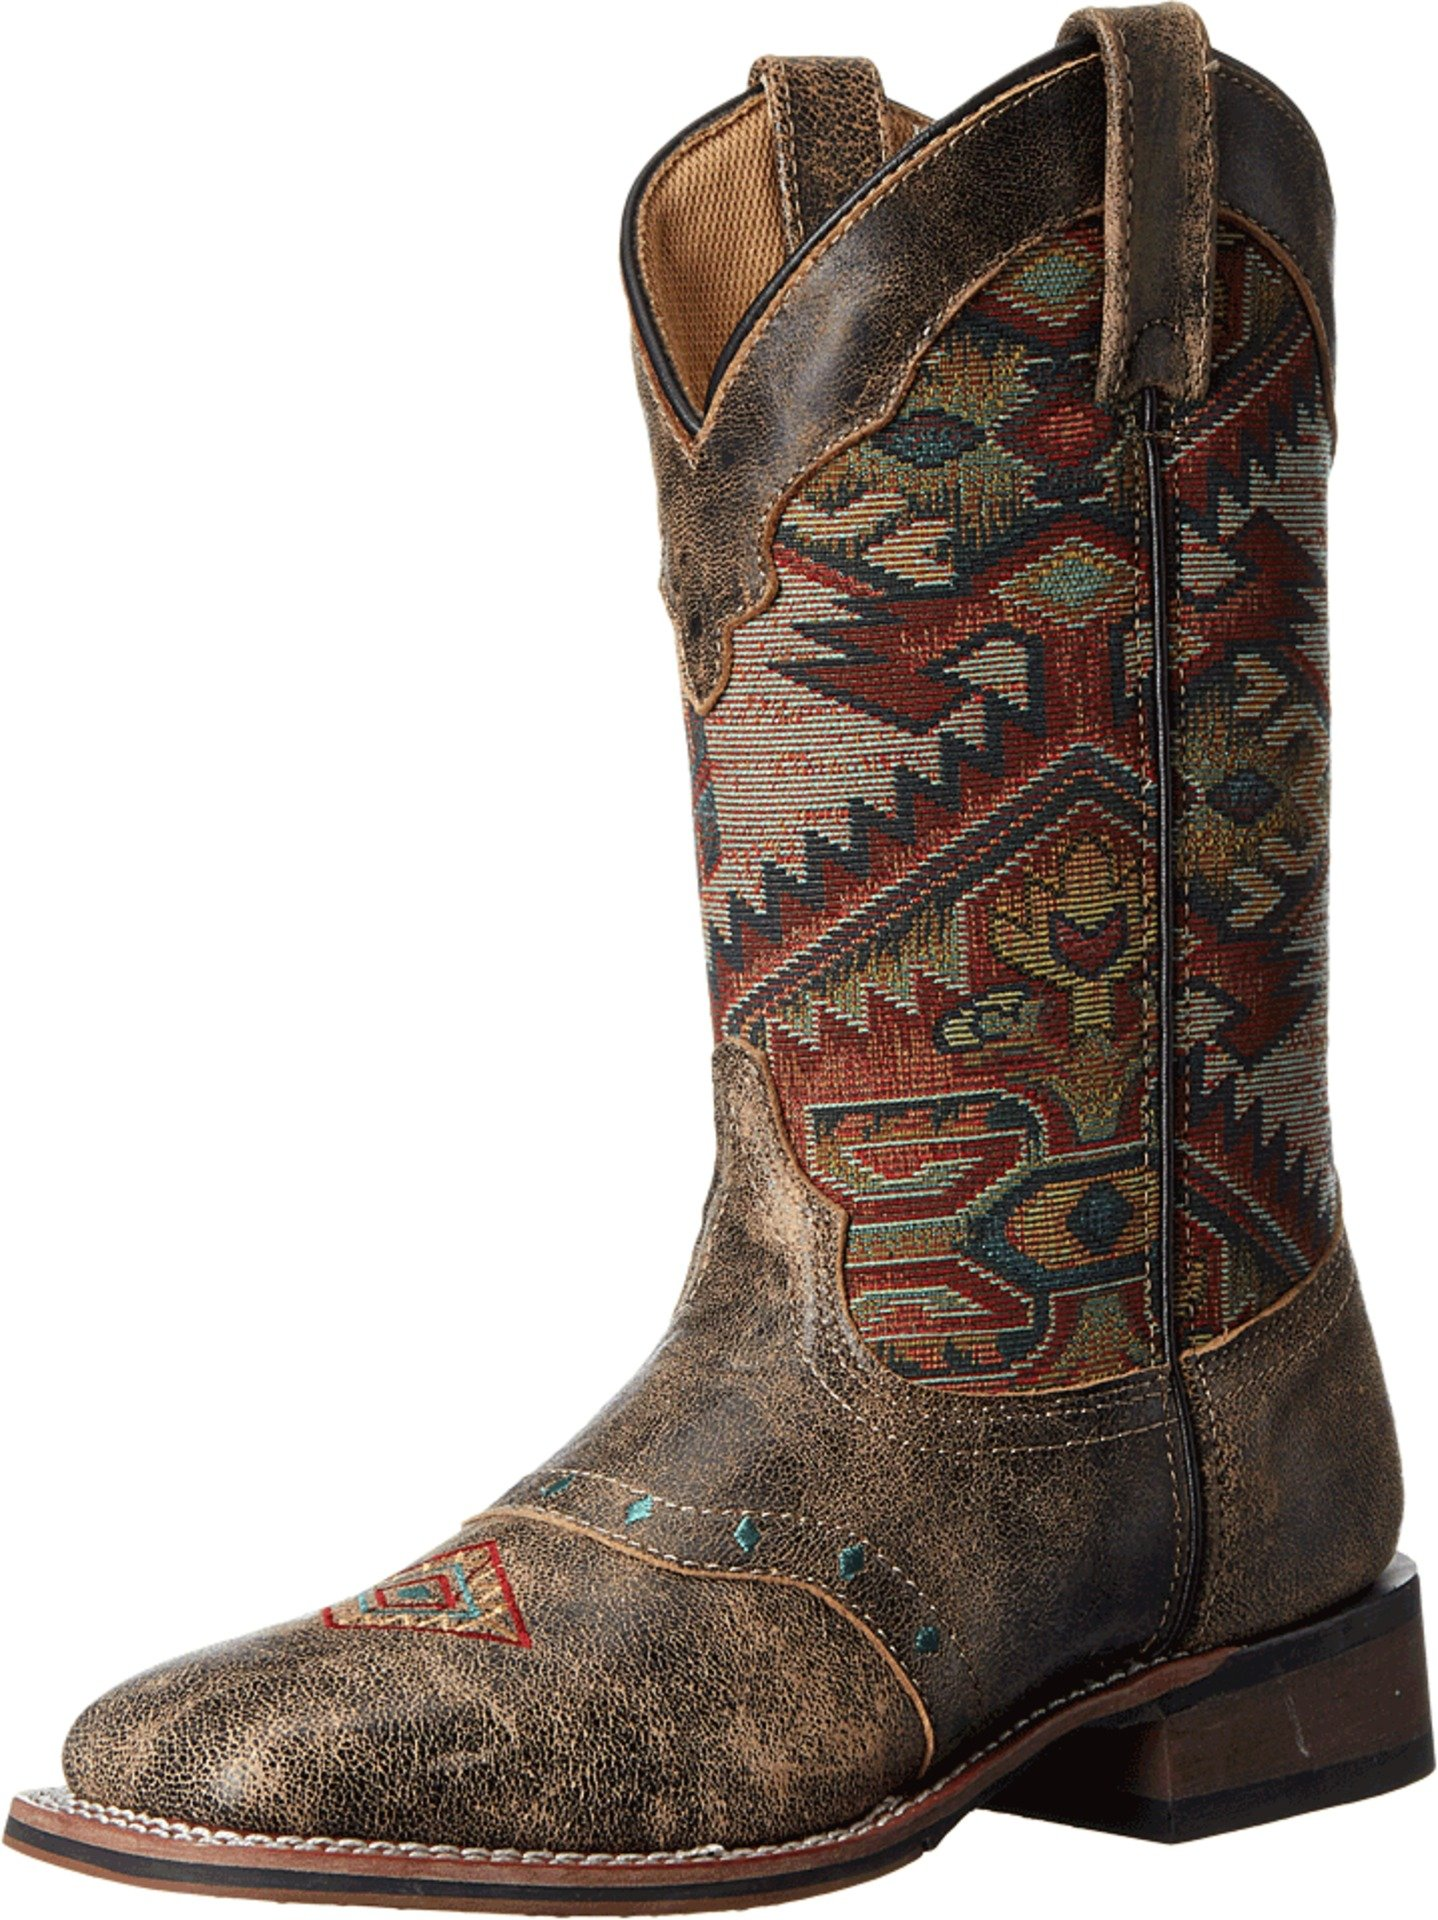 Laredo Women's Taupe With Aztec Top Boot Square Toe Taupe 7 M by Laredo (Image #1)